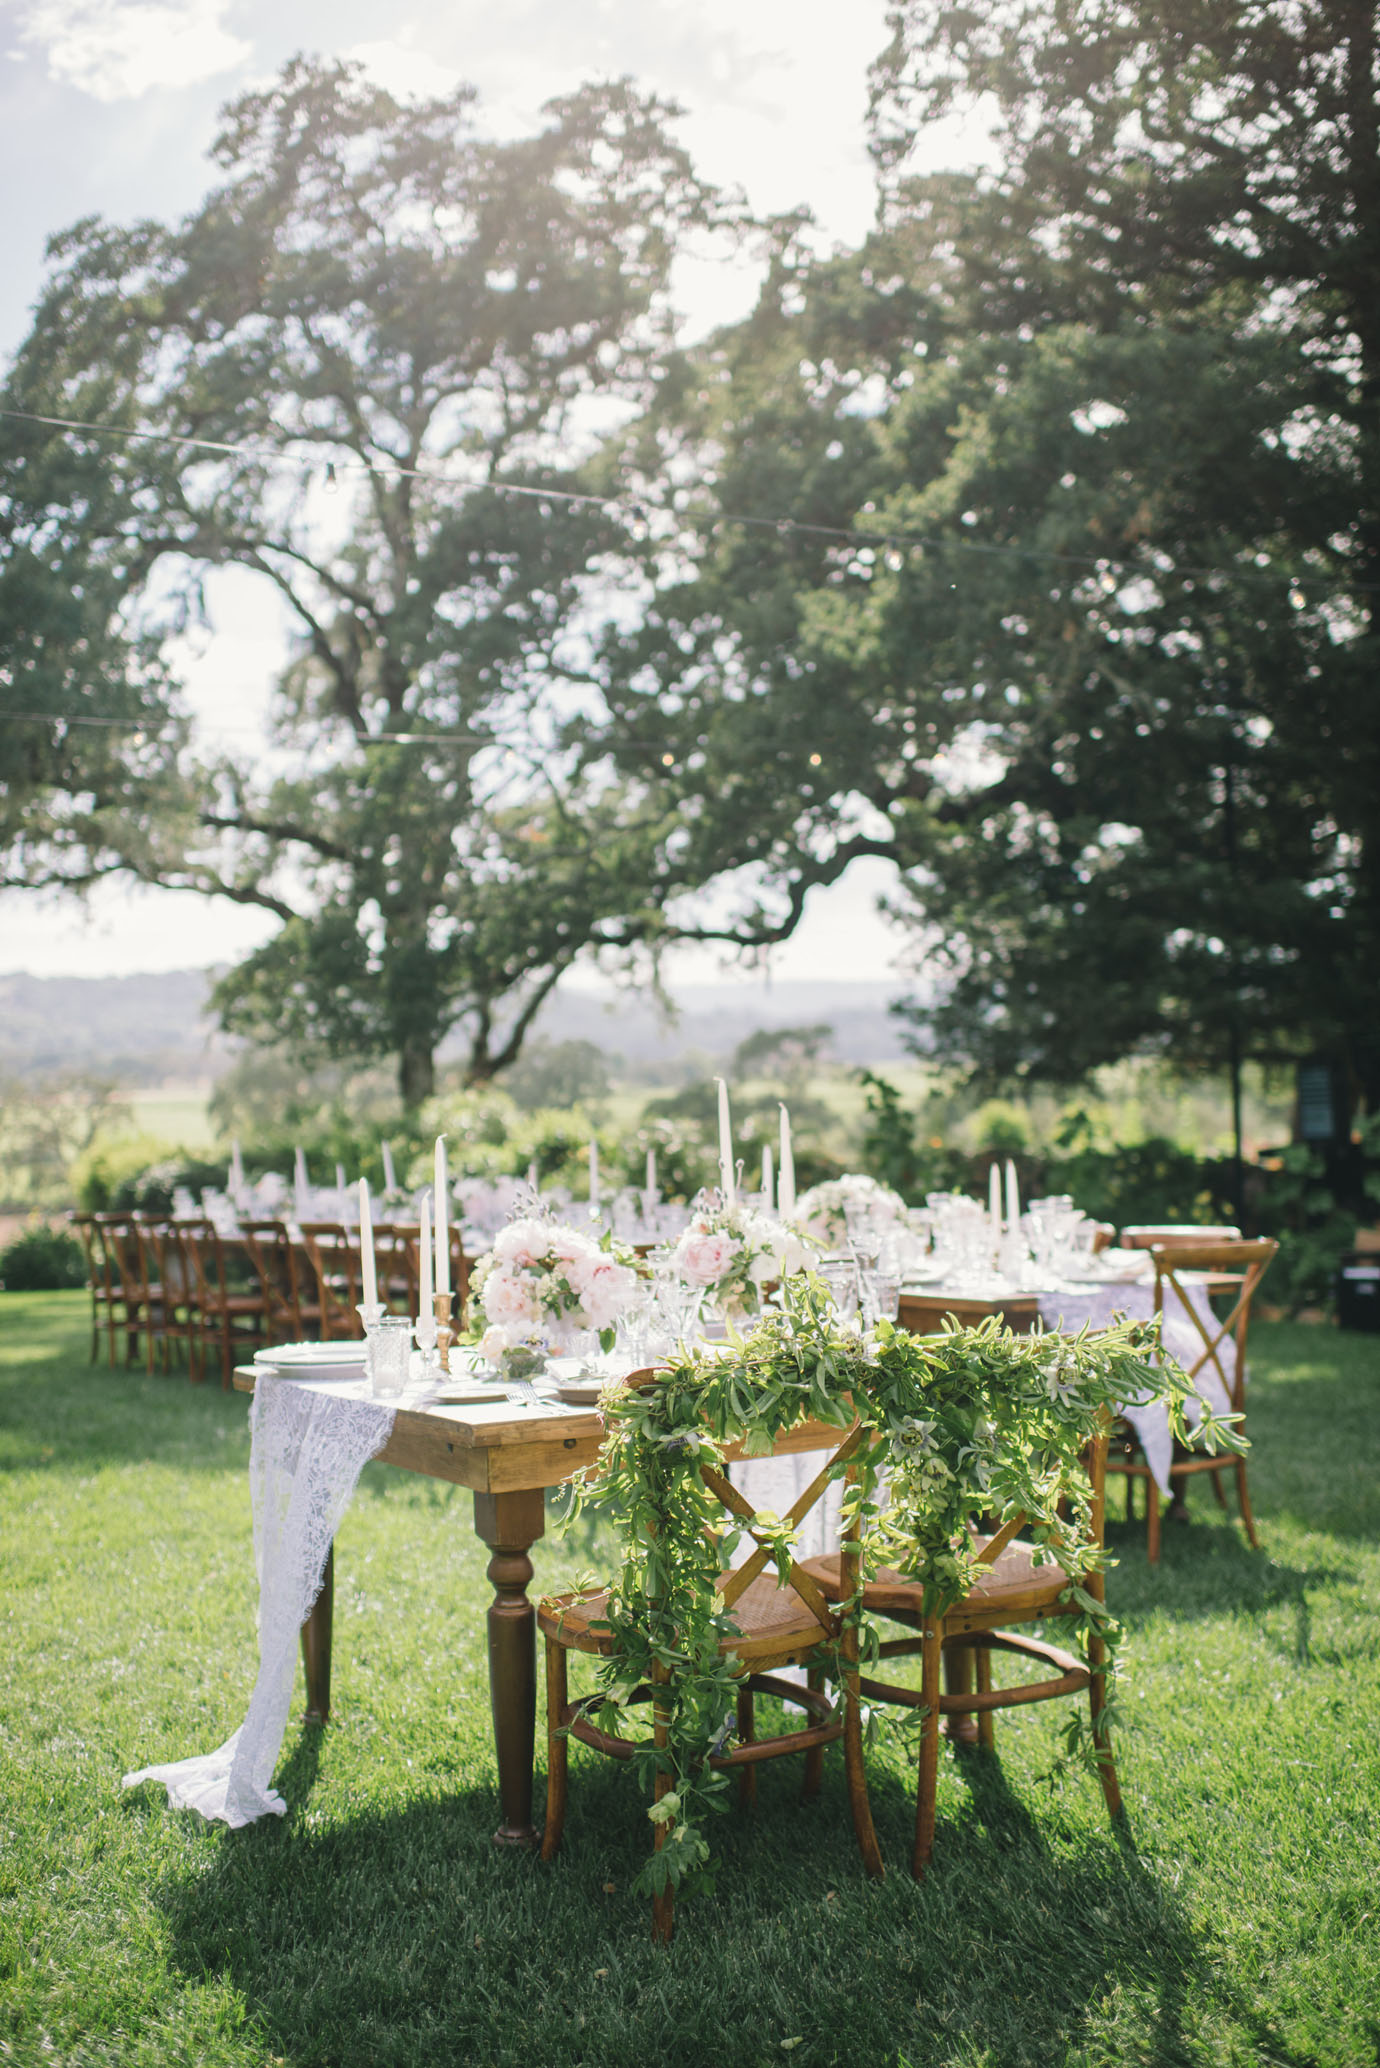 33-real-wedding-at-beltane-ranch080